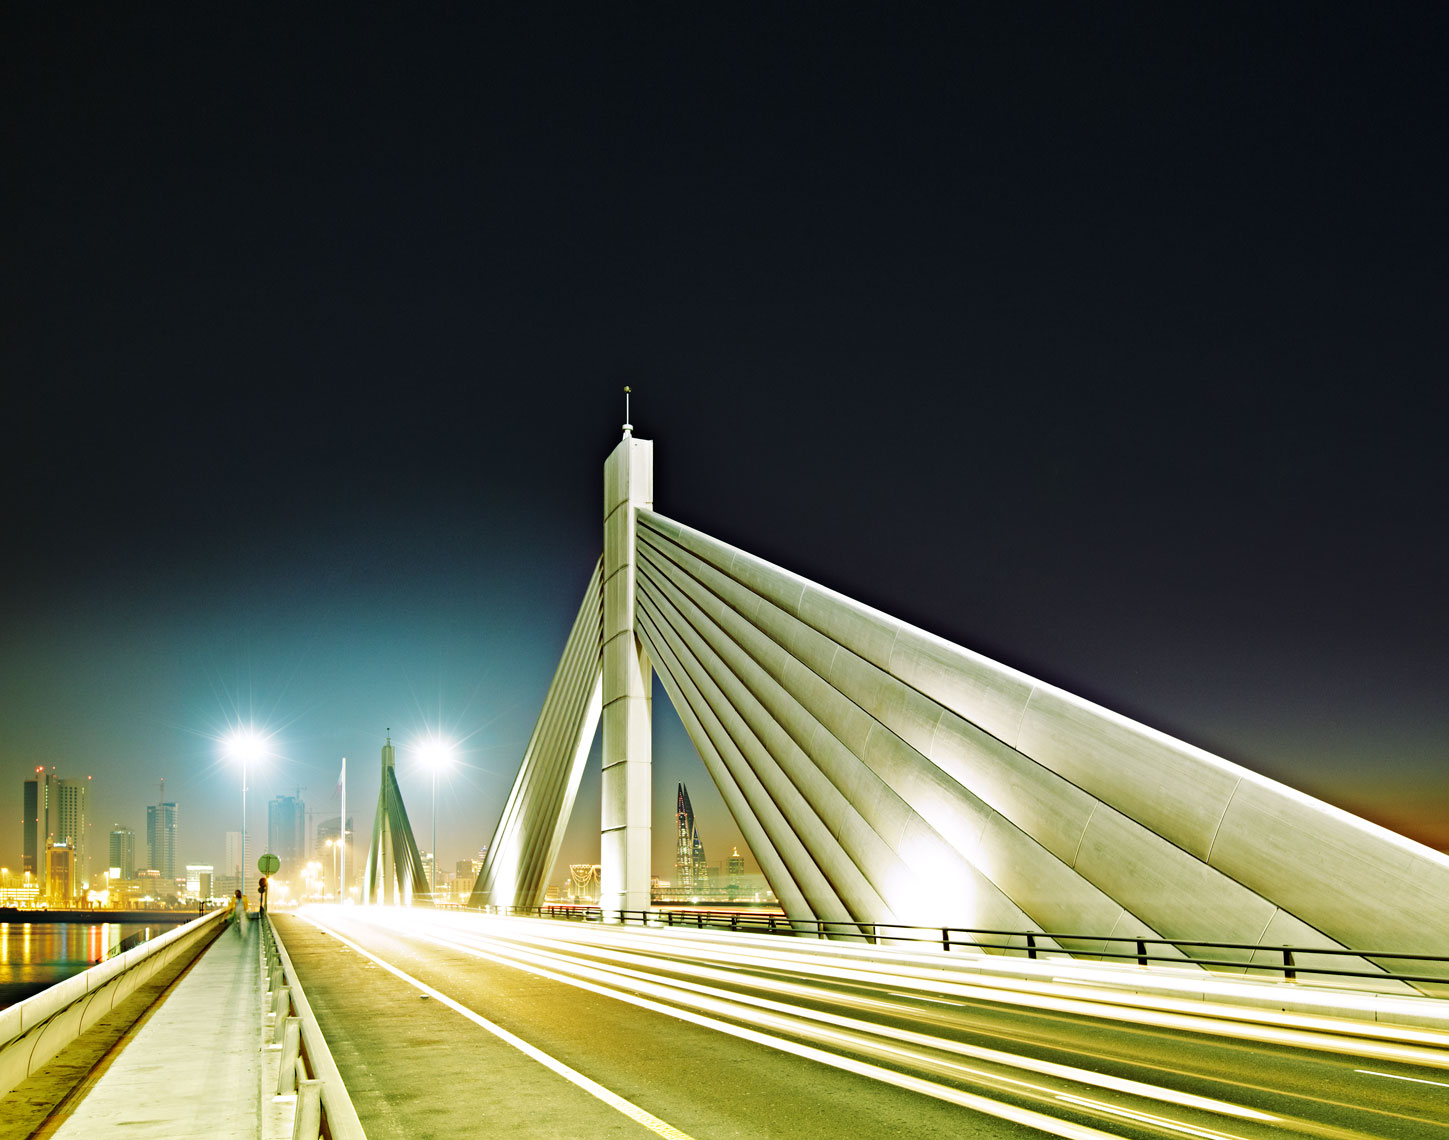 Bridge_Fin_crop.jpg